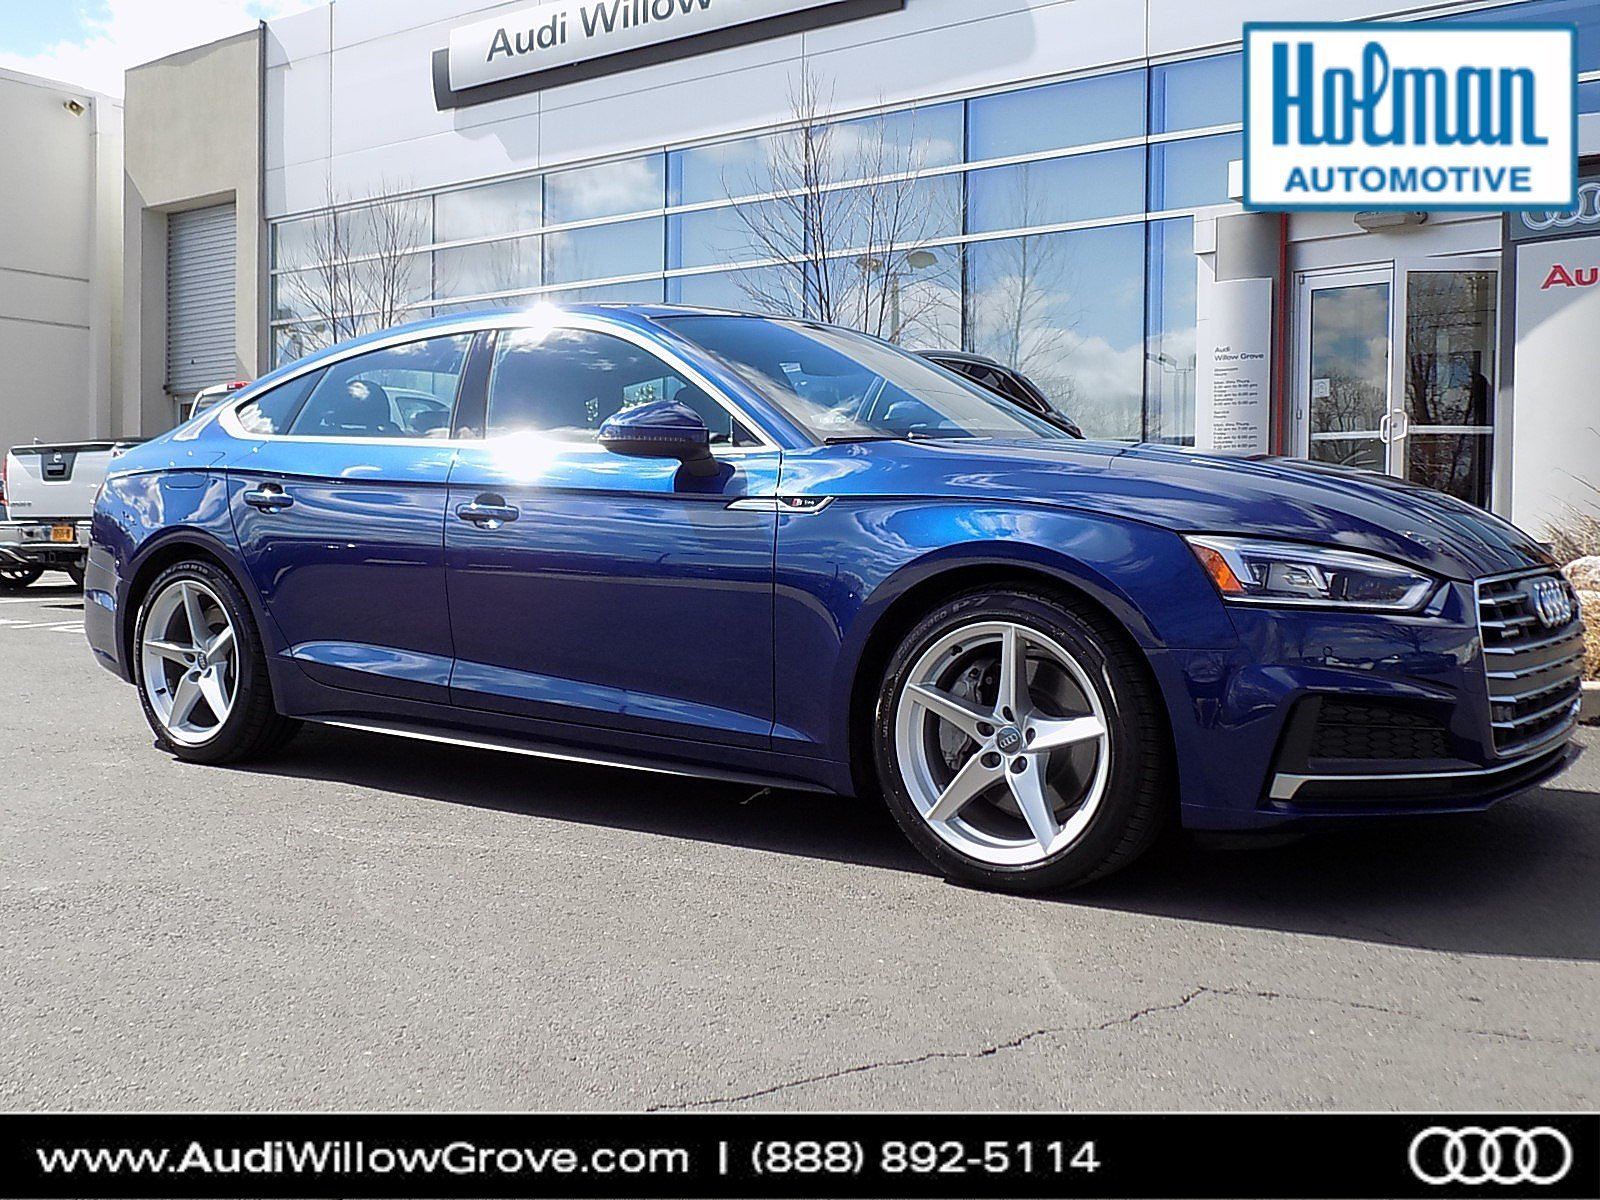 Audi Willow Grove Vehicles For Sale In Willow Grove Pa